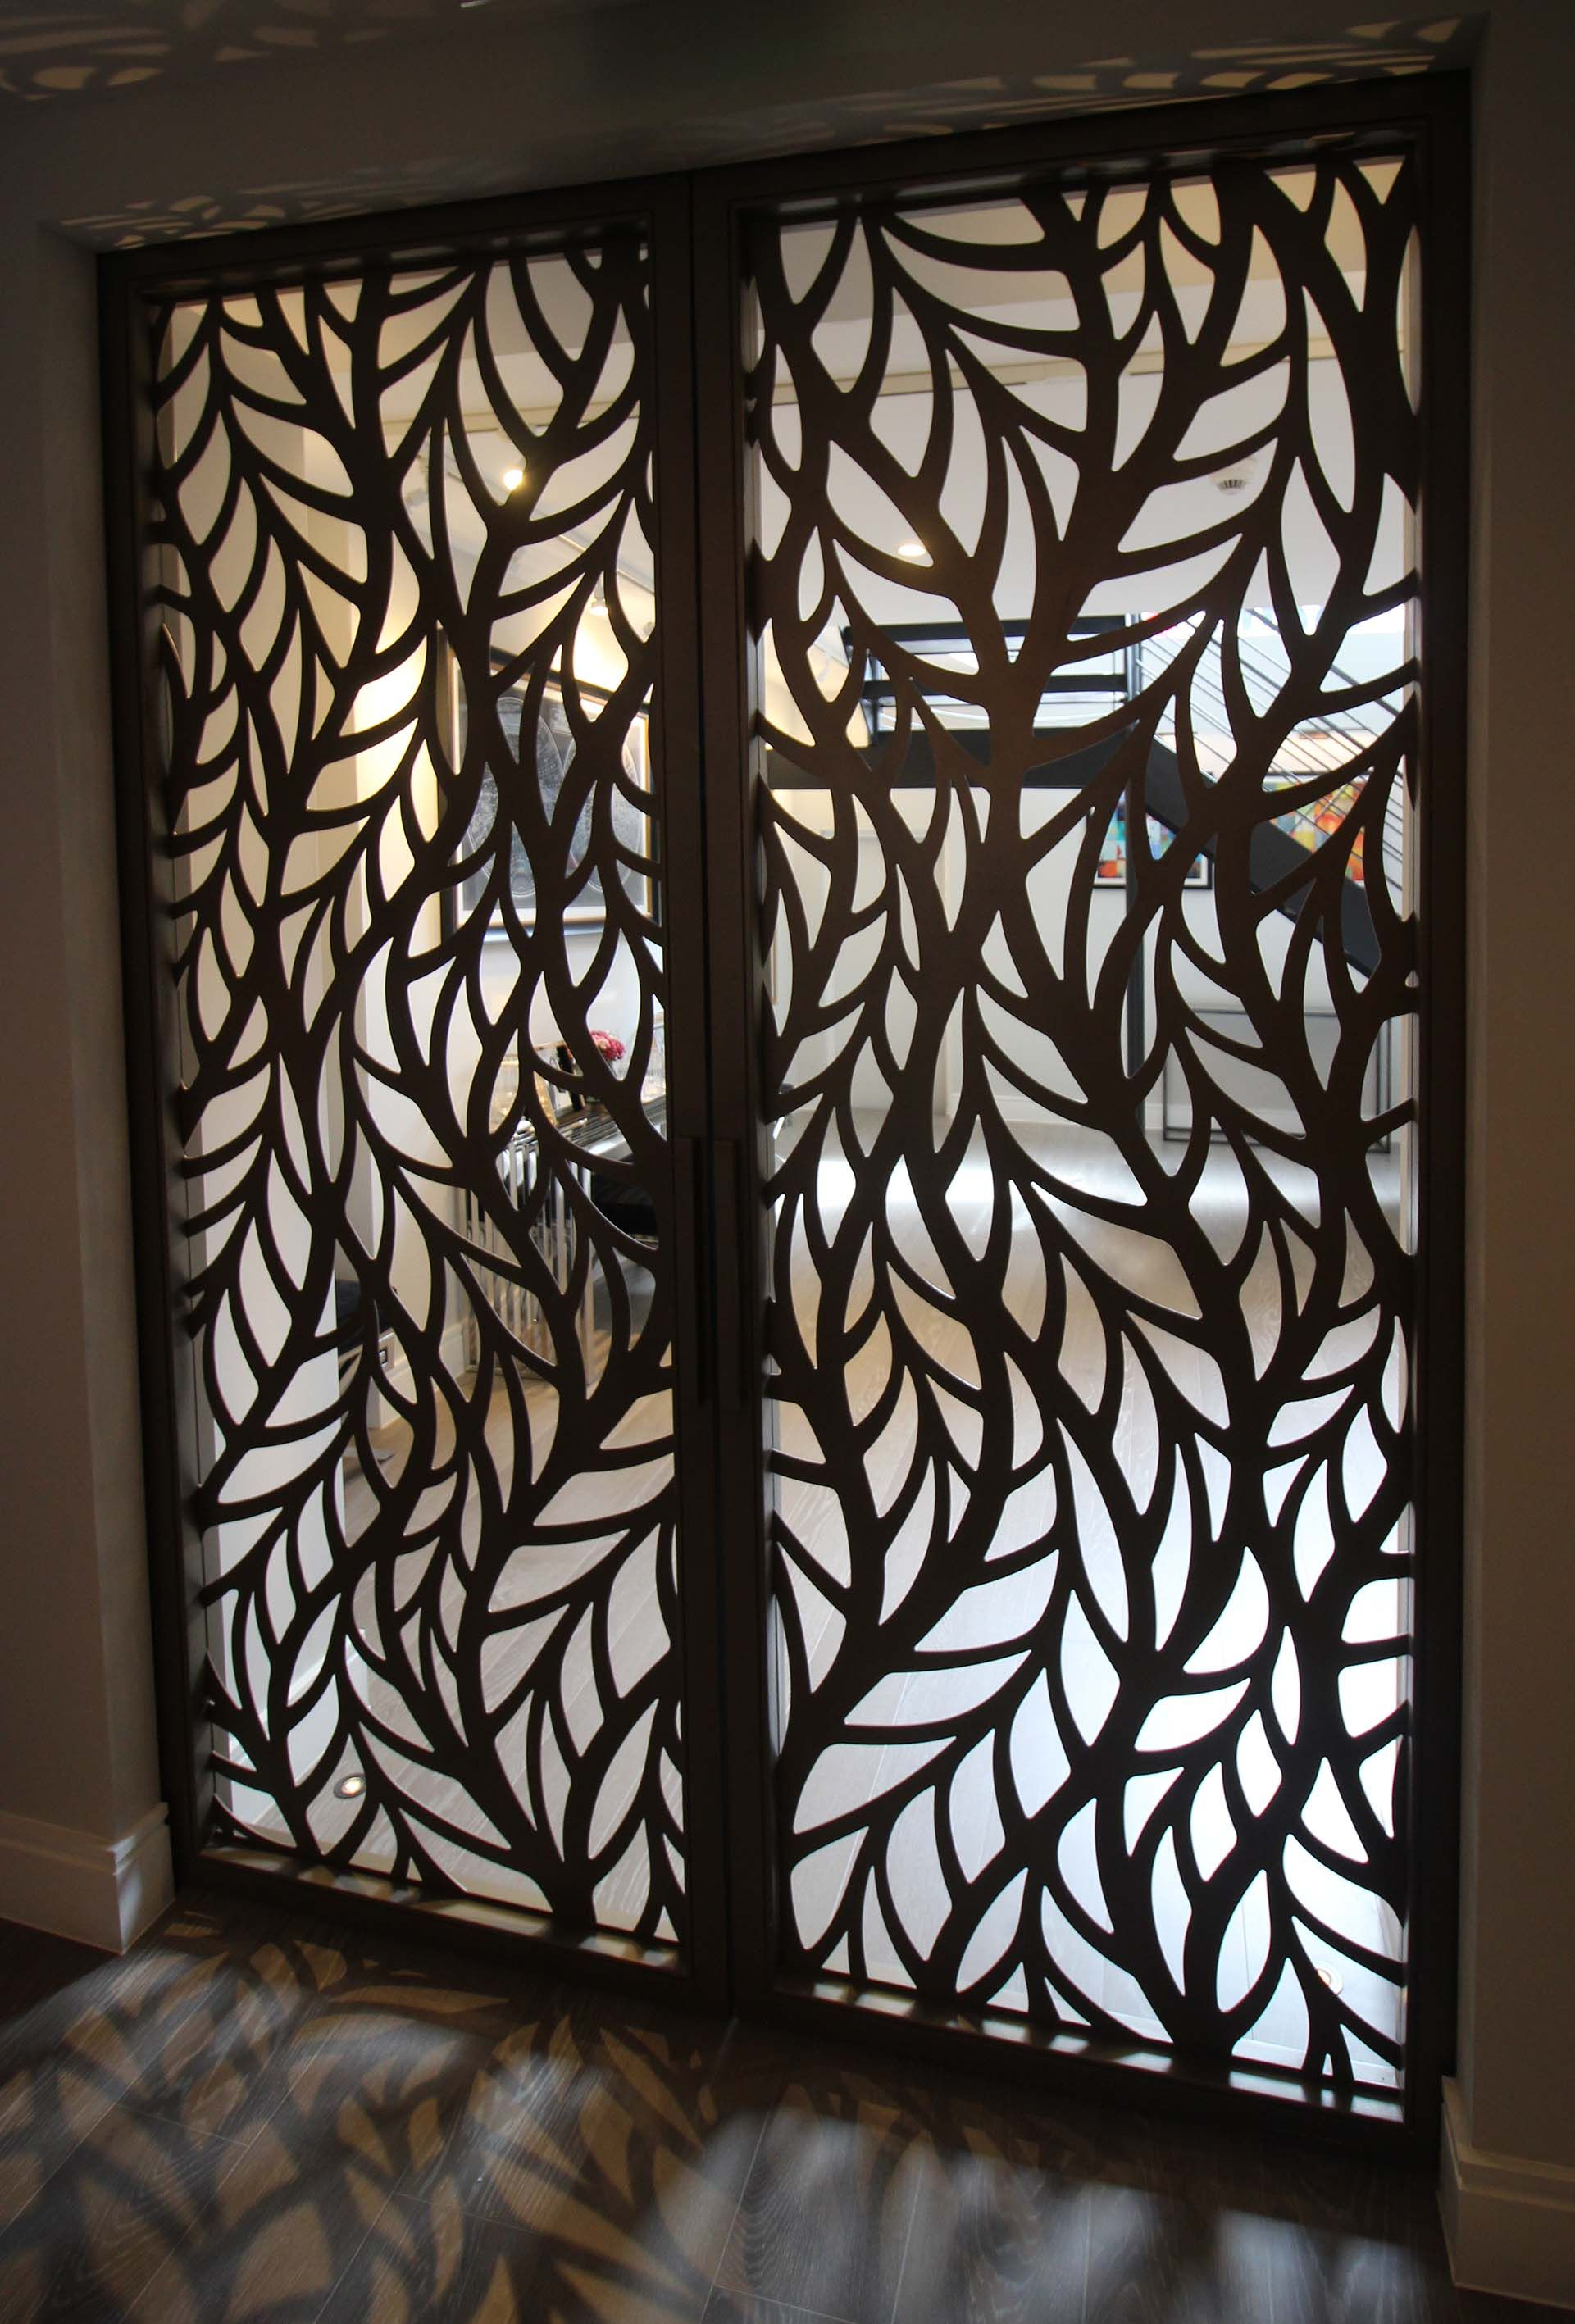 Silian art gallery london laser cut sliding doors frond for Door design cnc